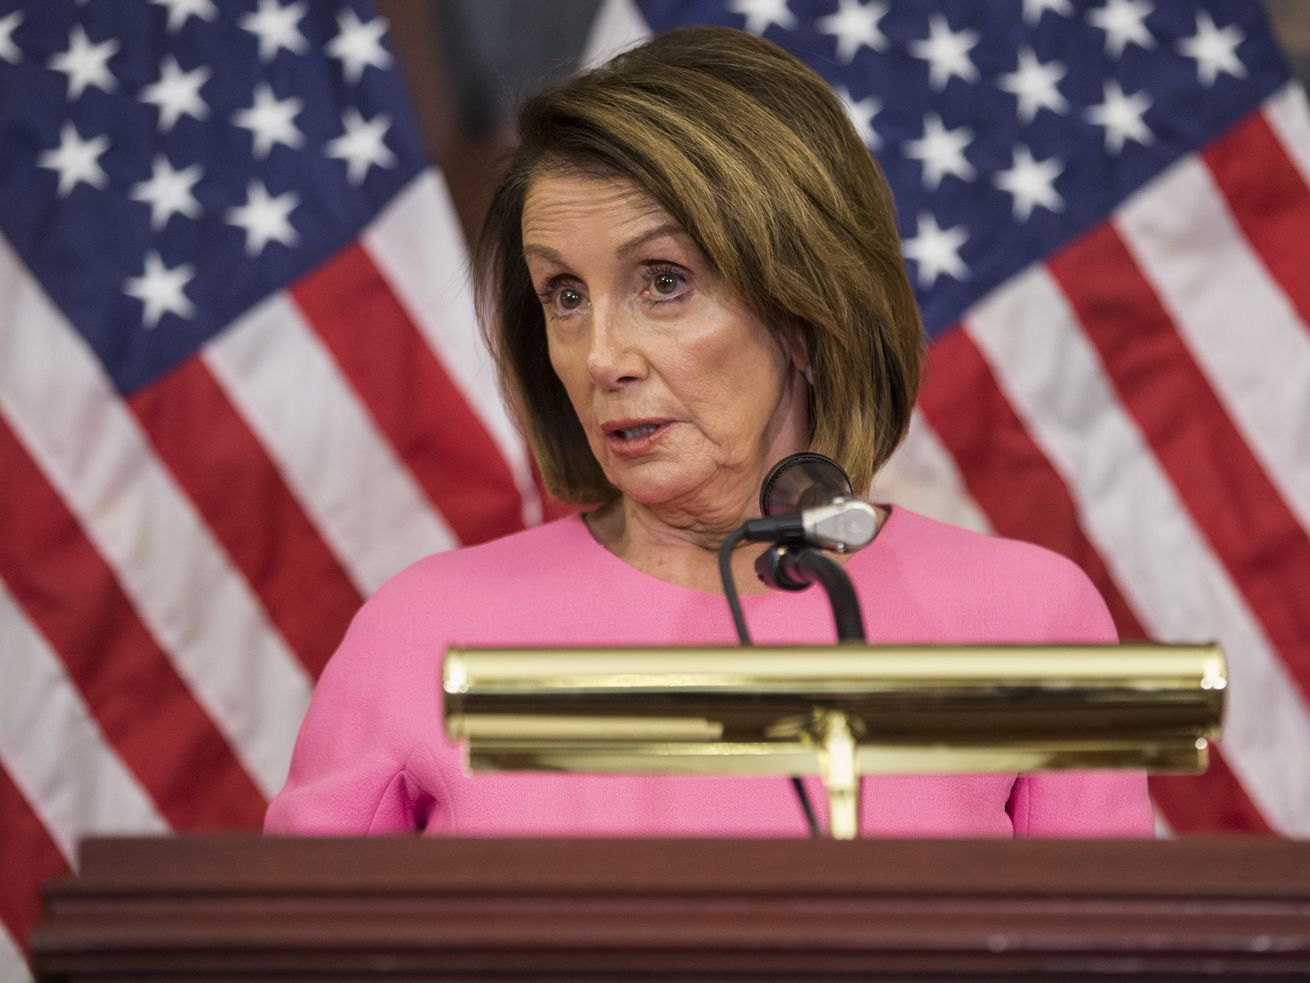 Nancy Pelosi, the likely next Speaker of the House, finds this argument confusing.